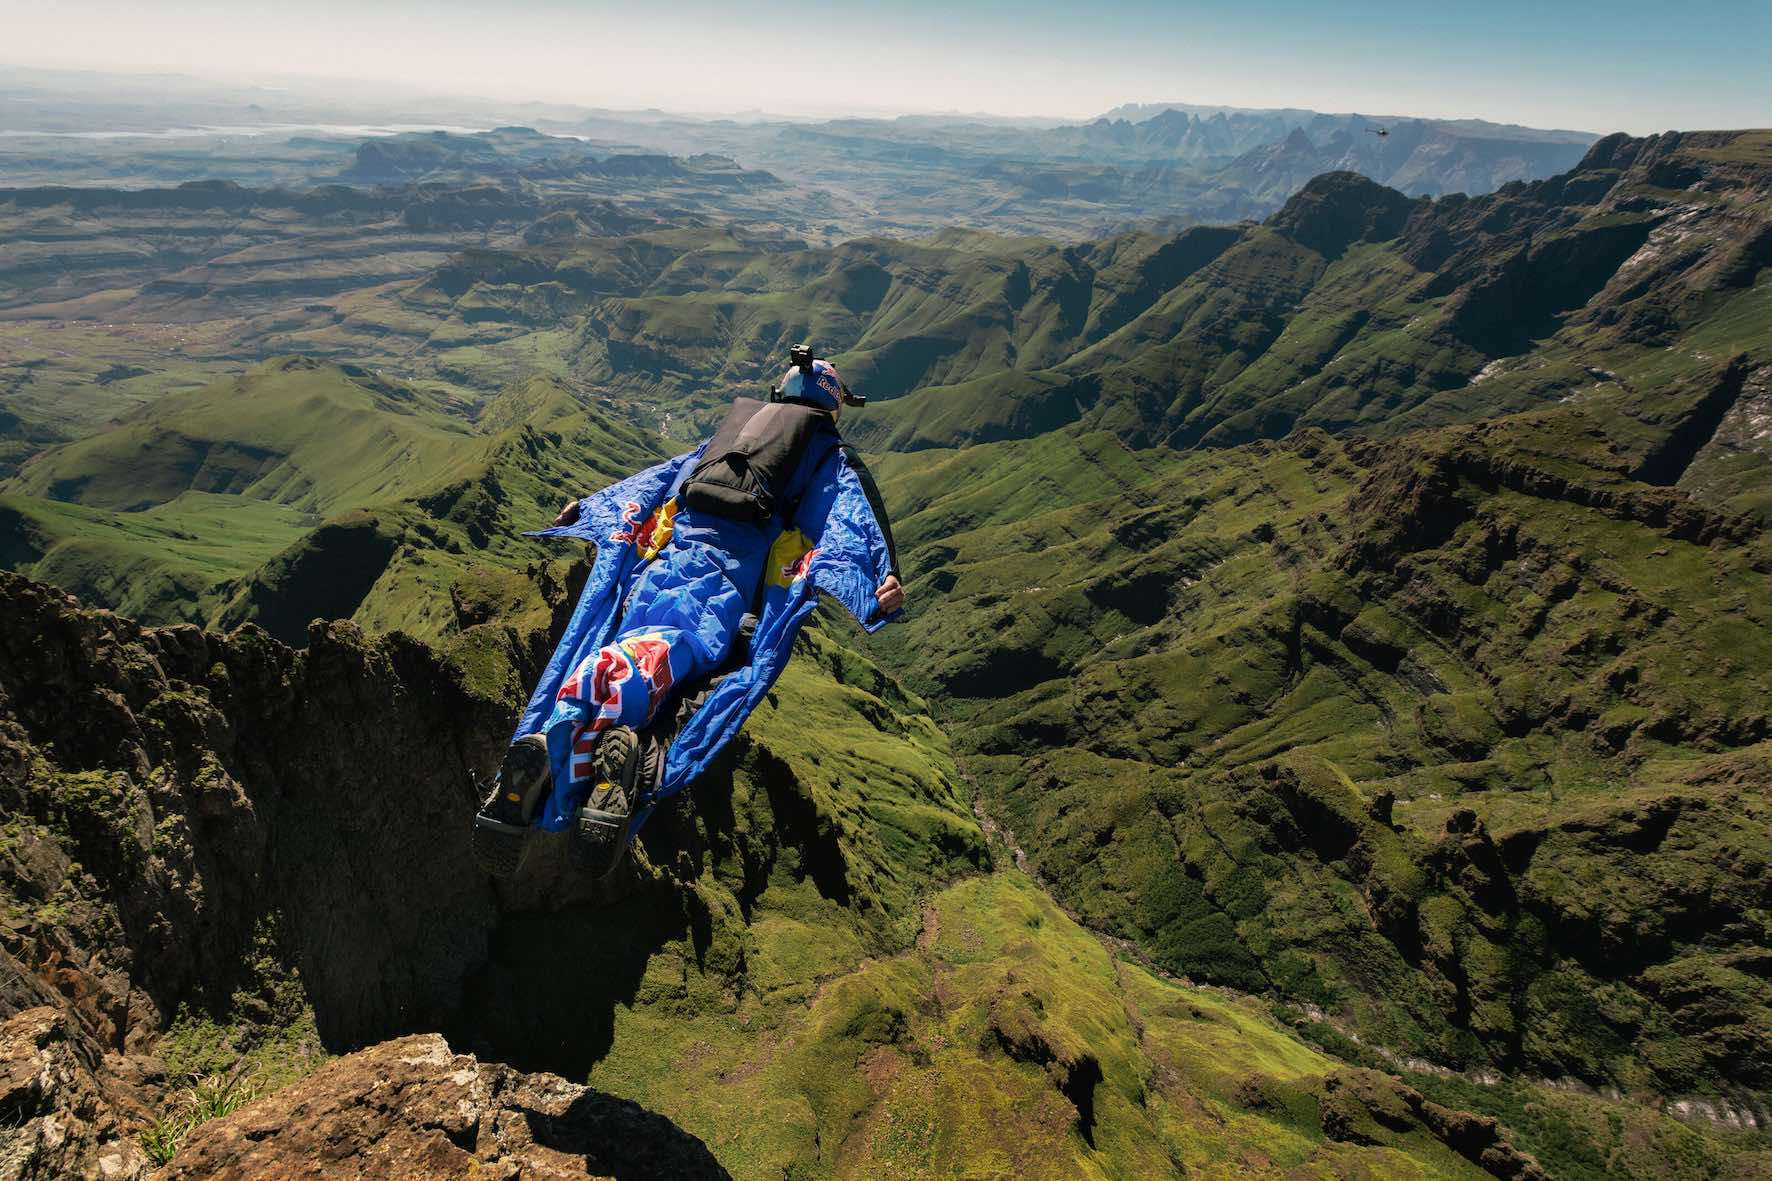 Barrier of spears flying wingsuits through the Drakensburg short film